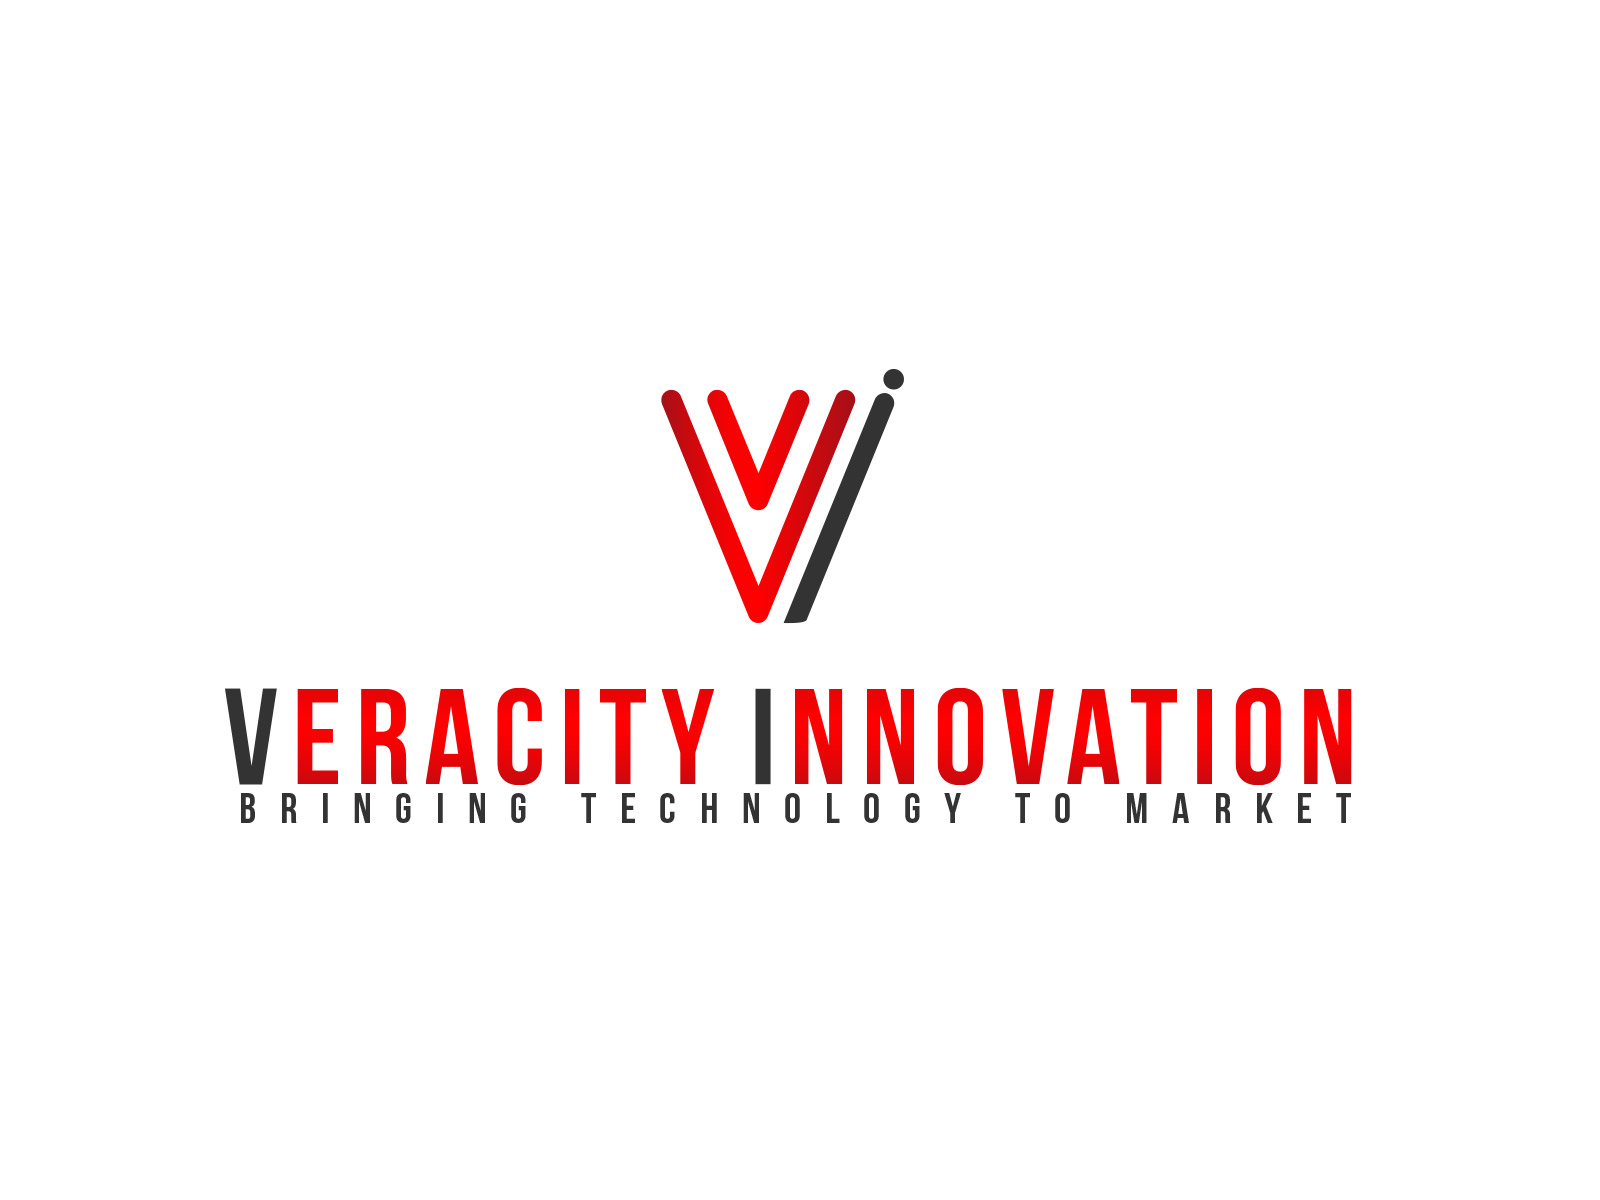 Logo Design by olii - Entry No. 305 in the Logo Design Contest Creative Logo Design for Veracity Innovation, LLC.